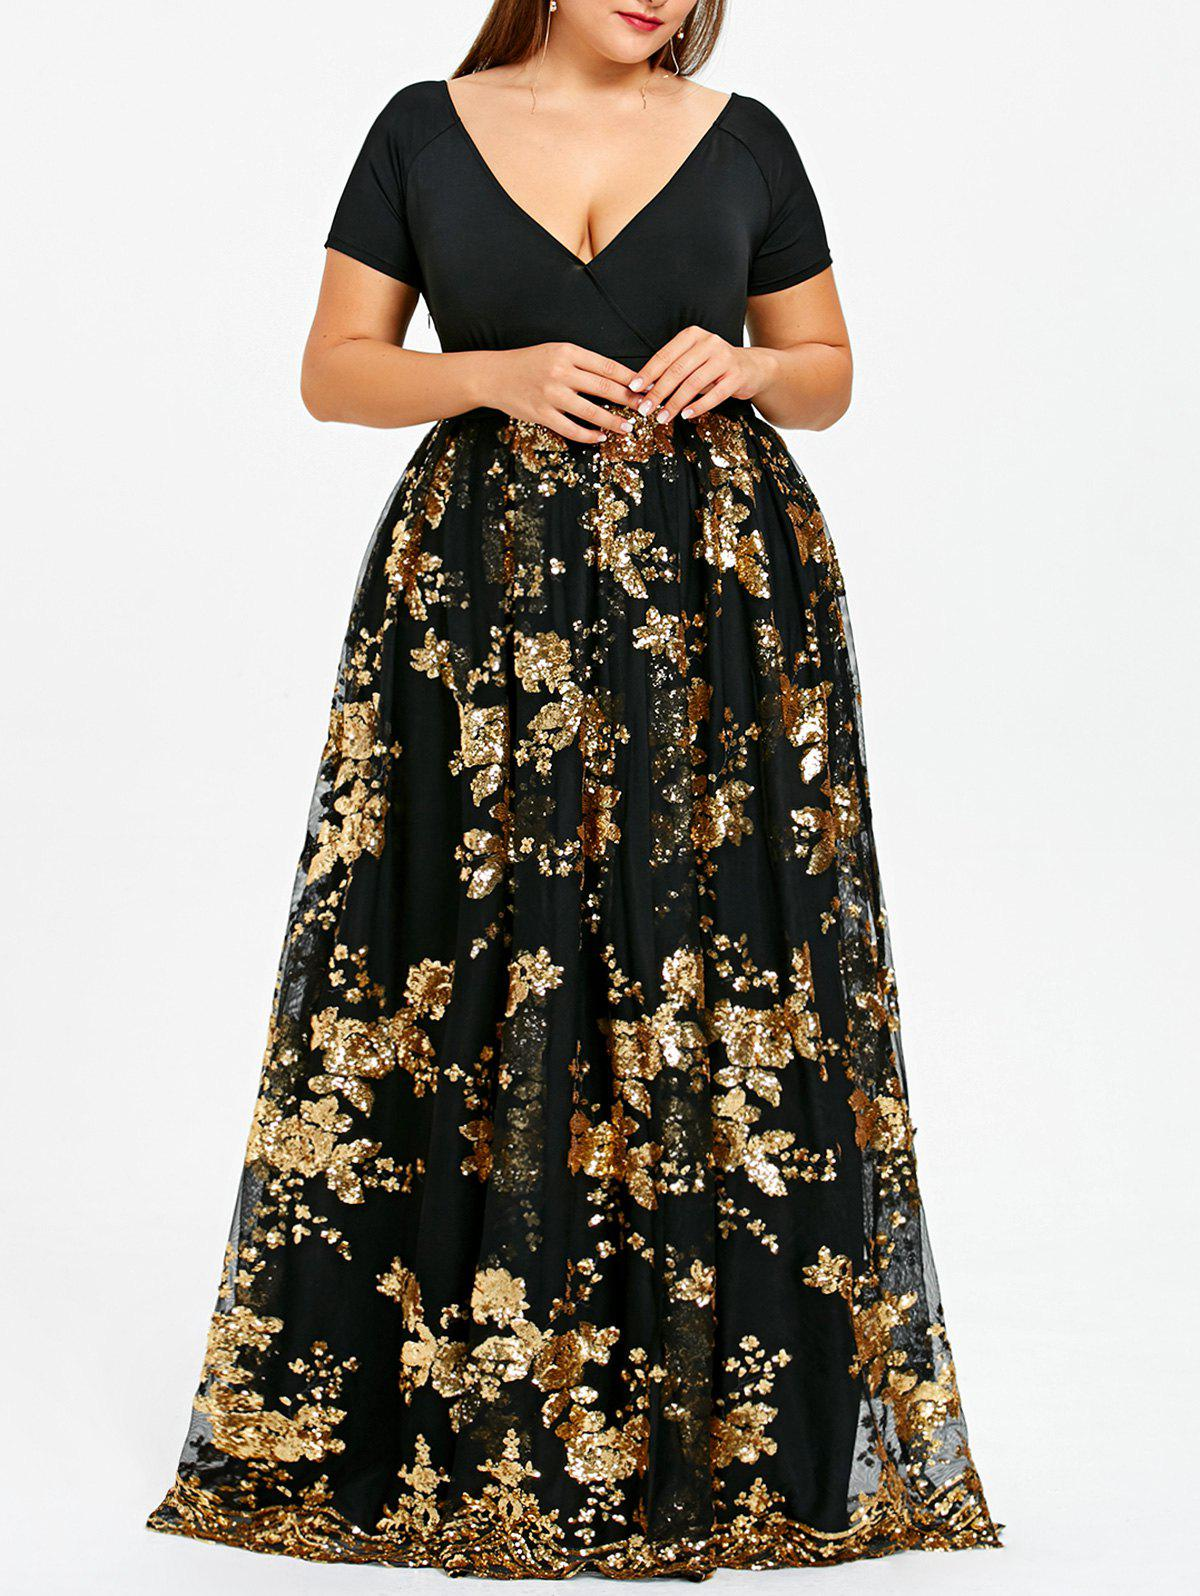 fa6649021d7 46% OFF  Plus Size Floral Sequined Maxi Prom Dress